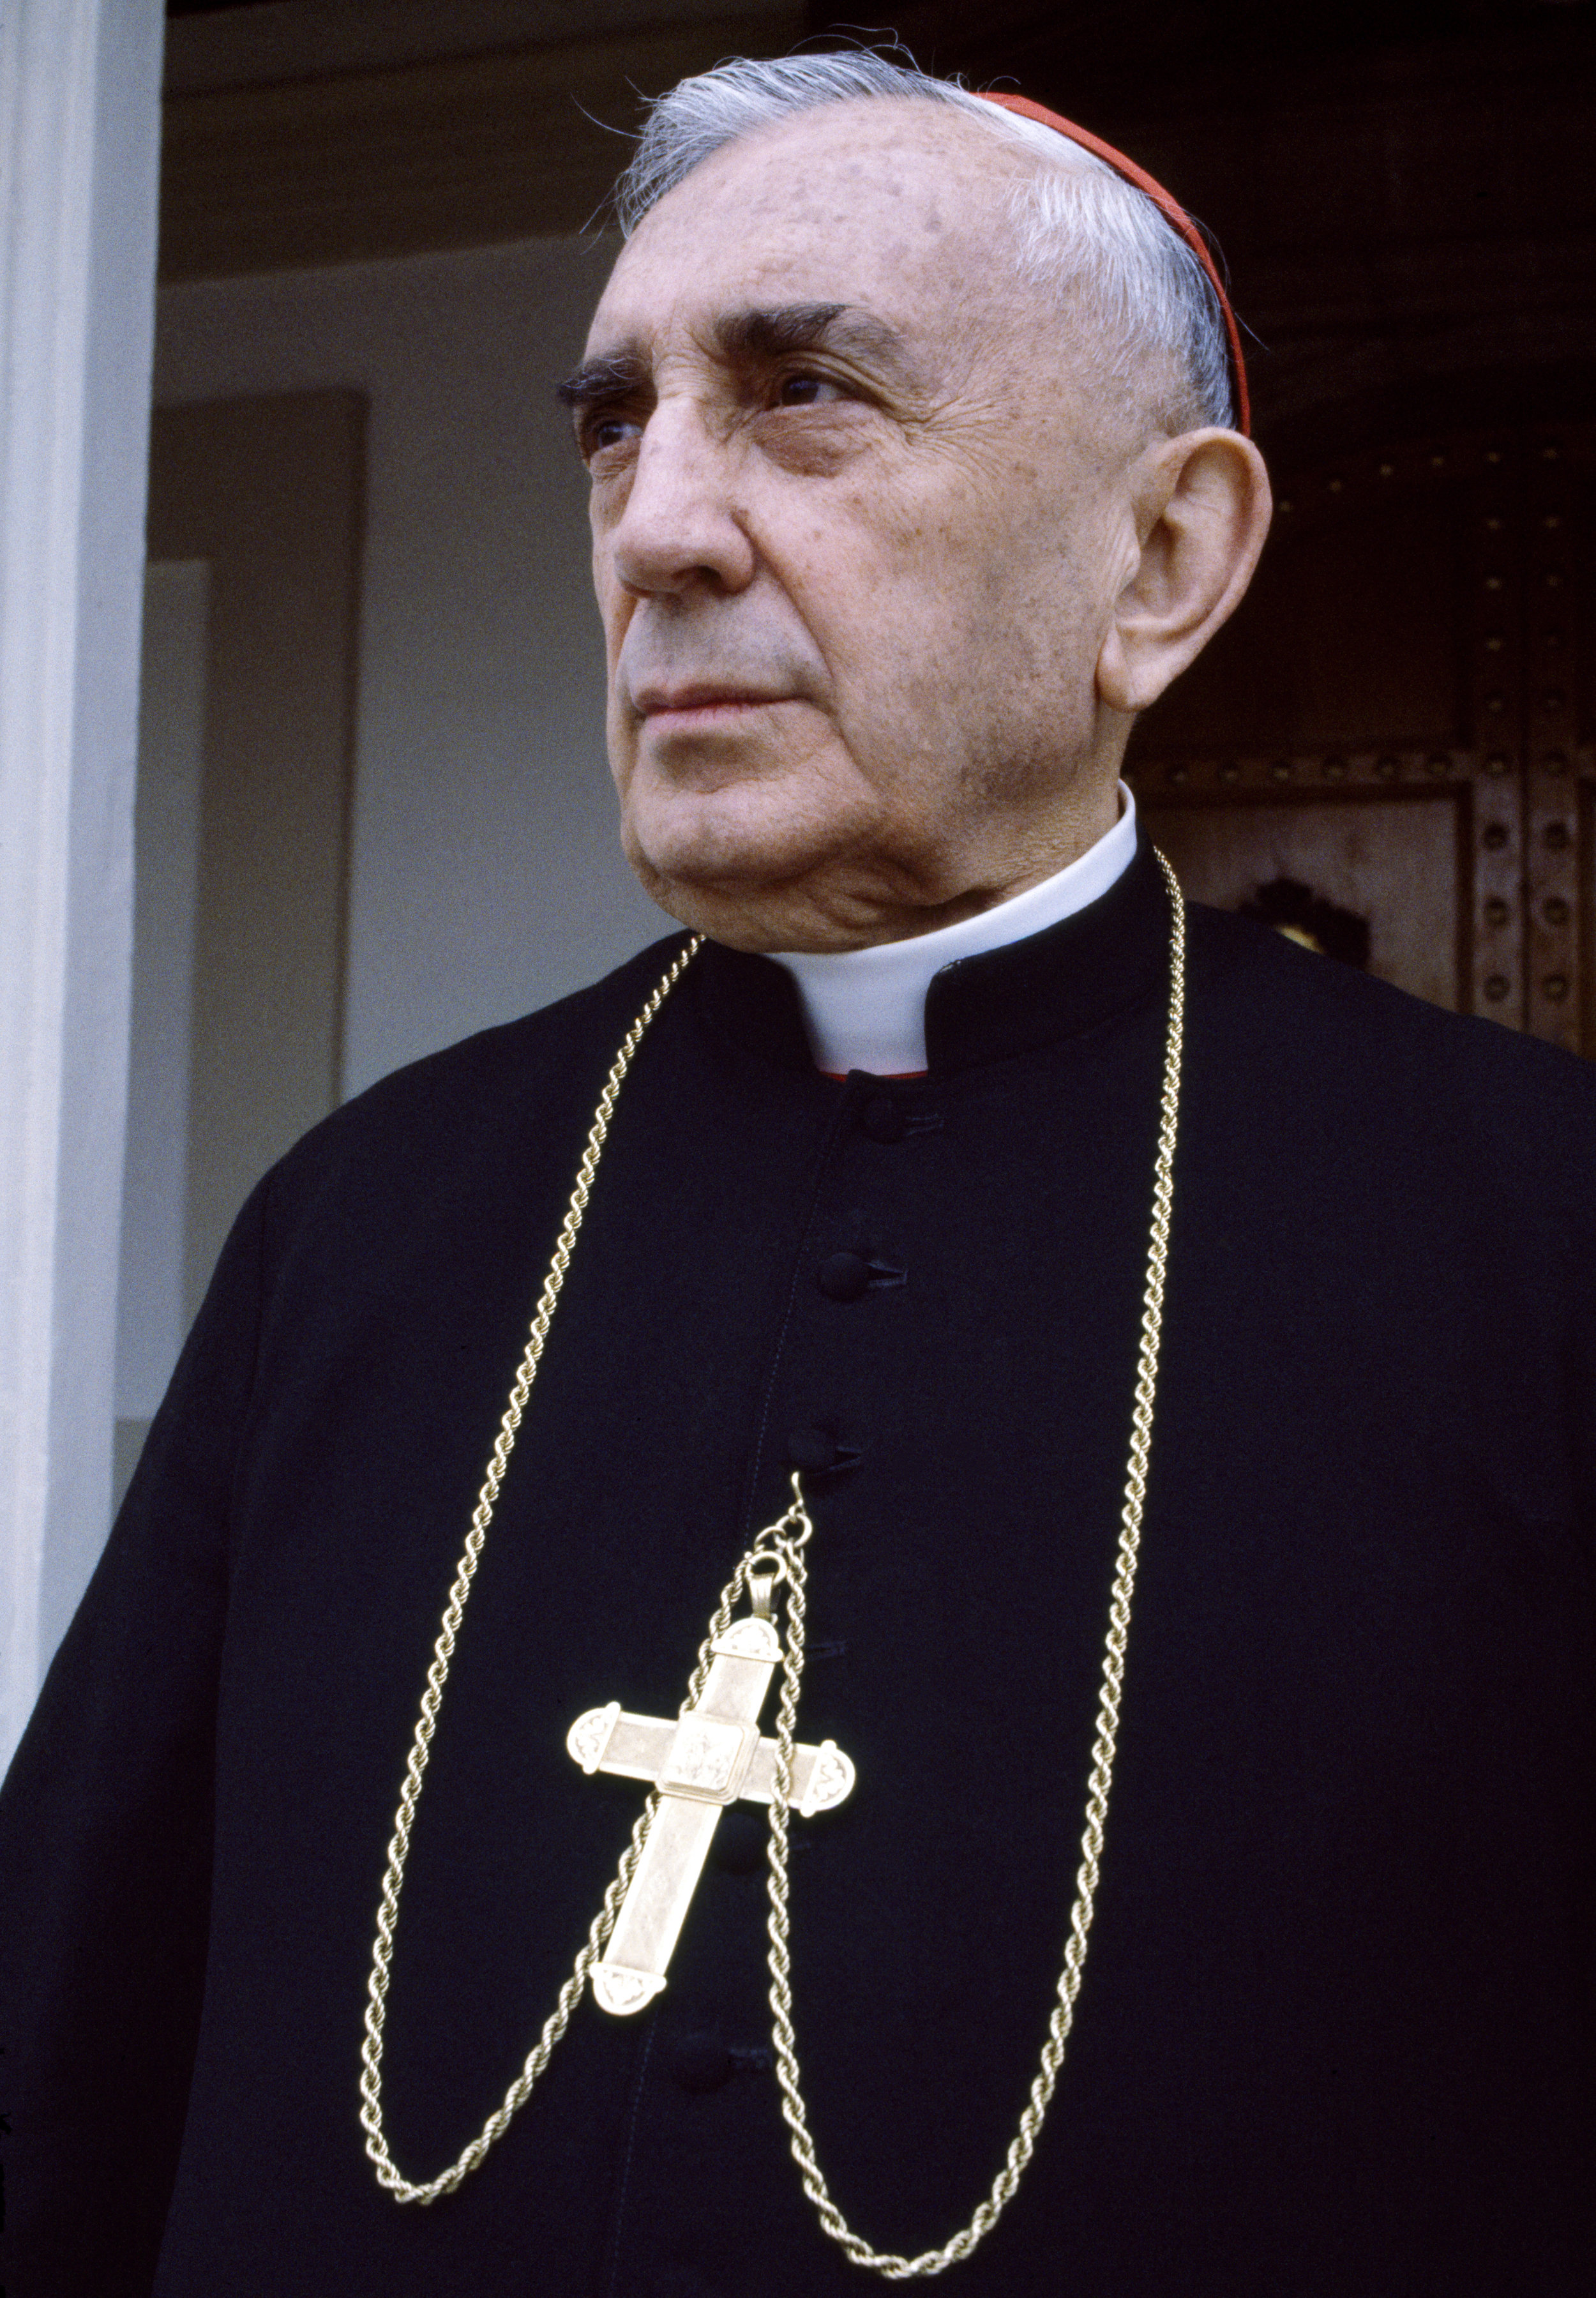 Mario Cardinal Casariego, (1909-1983), the Roman Catholic Archbishop of Guatemala, stands for a photograph in front of Iglesia Central in Guatemala City, Guatemala, February 1, 1983. Cardinal Casariego died June 15, 1983 from a heart attack shortly after the March 1983 visit of Pope John Paul ll to Guatemala. Throughout Guatemala's 36-year civil war, Mario Cardinal Casariego was a supporter of the Guatemalan army's authoritarian regime.